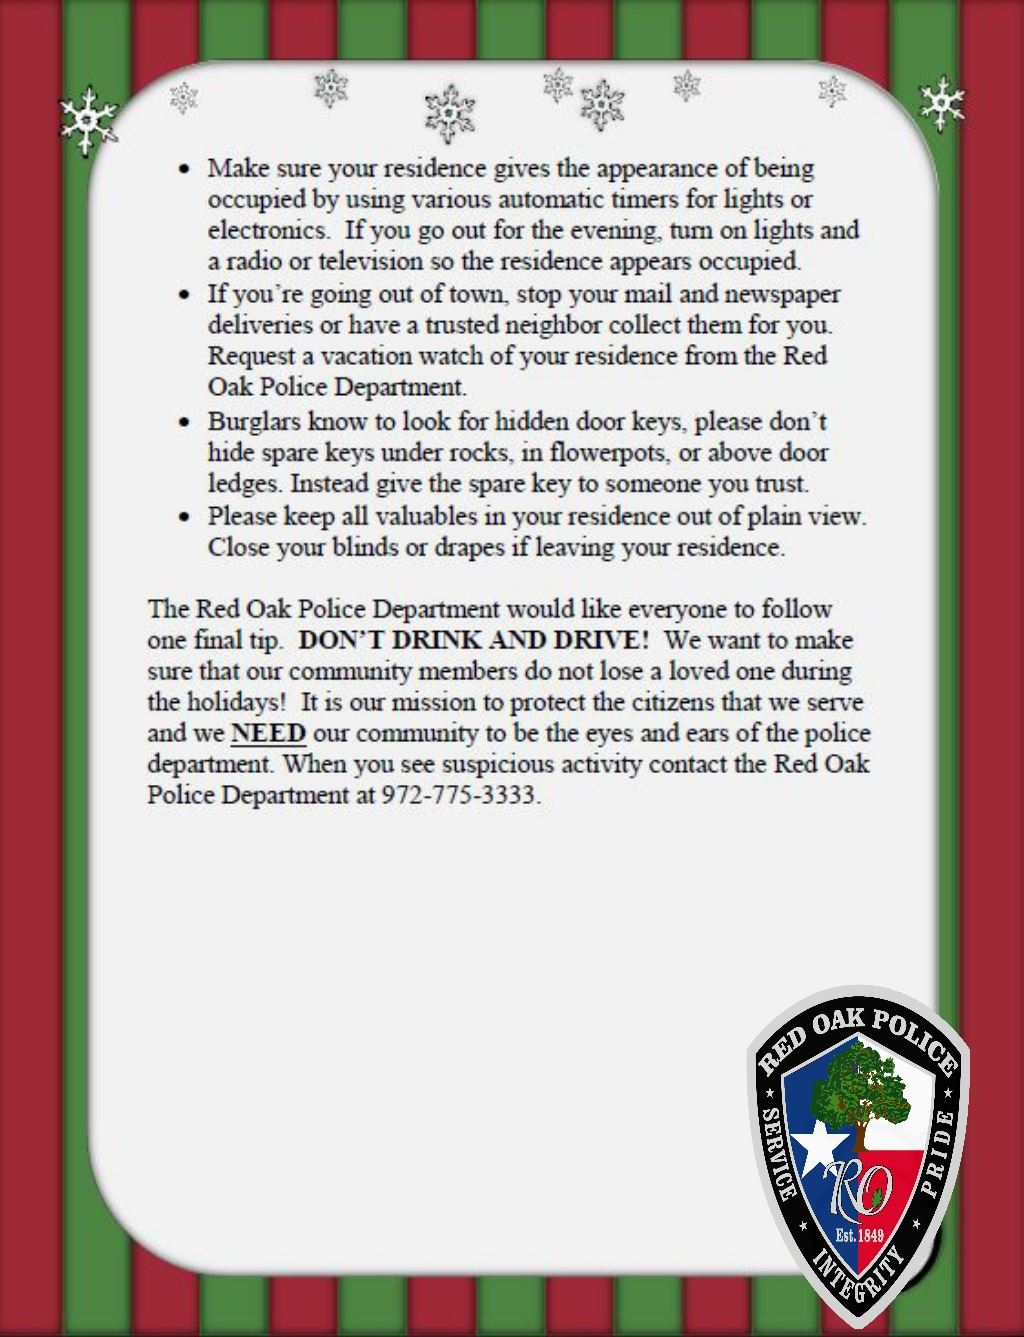 ROPD Holiday Safety Tips p2